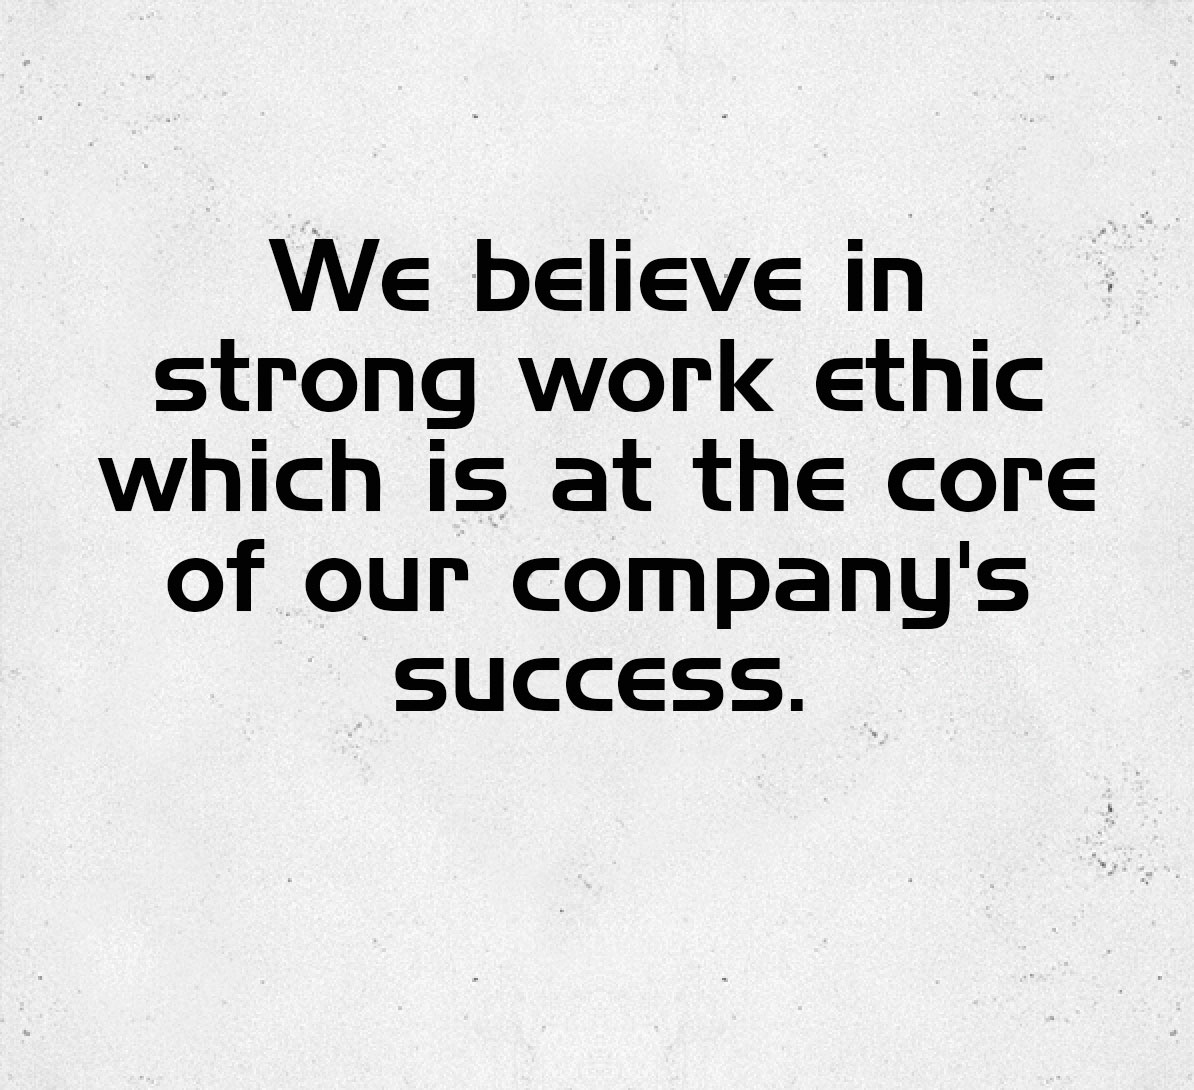 value 4 strong work ethic which is at the core of our company s value 4 strong work ethic which is at the core of our company s success